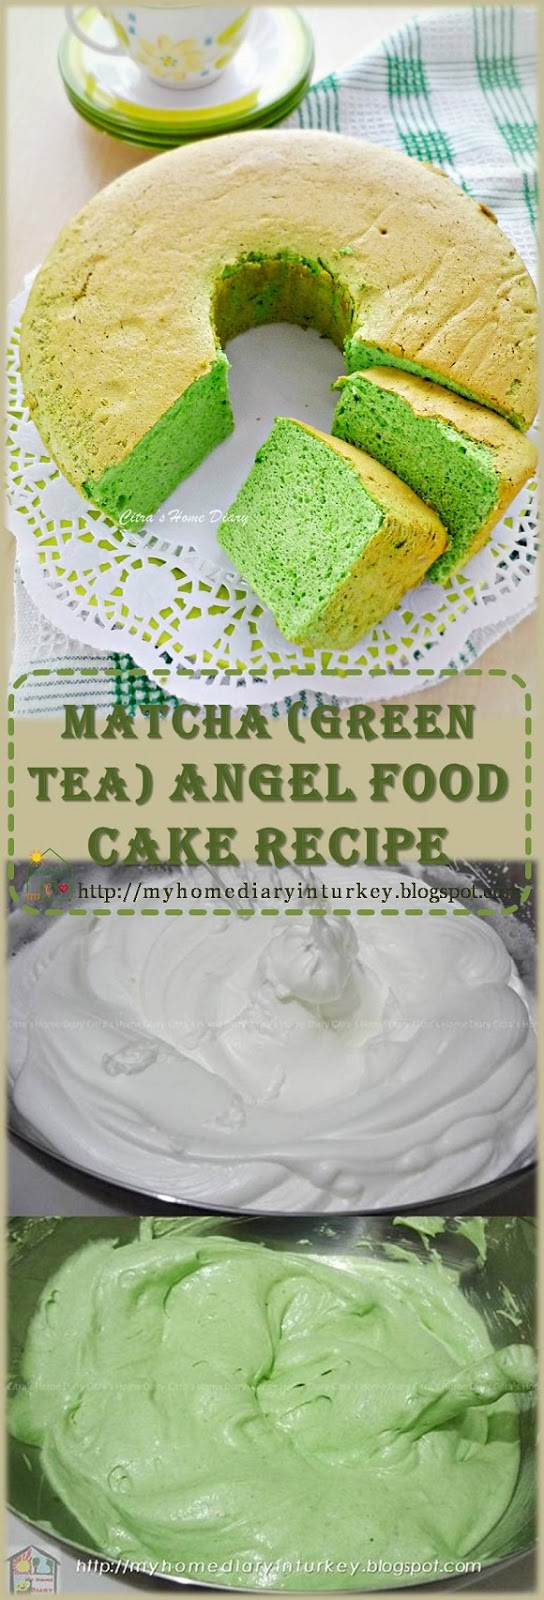 Citras home diary matcha green tea angel food cake recipe the recipe forumfinder Gallery